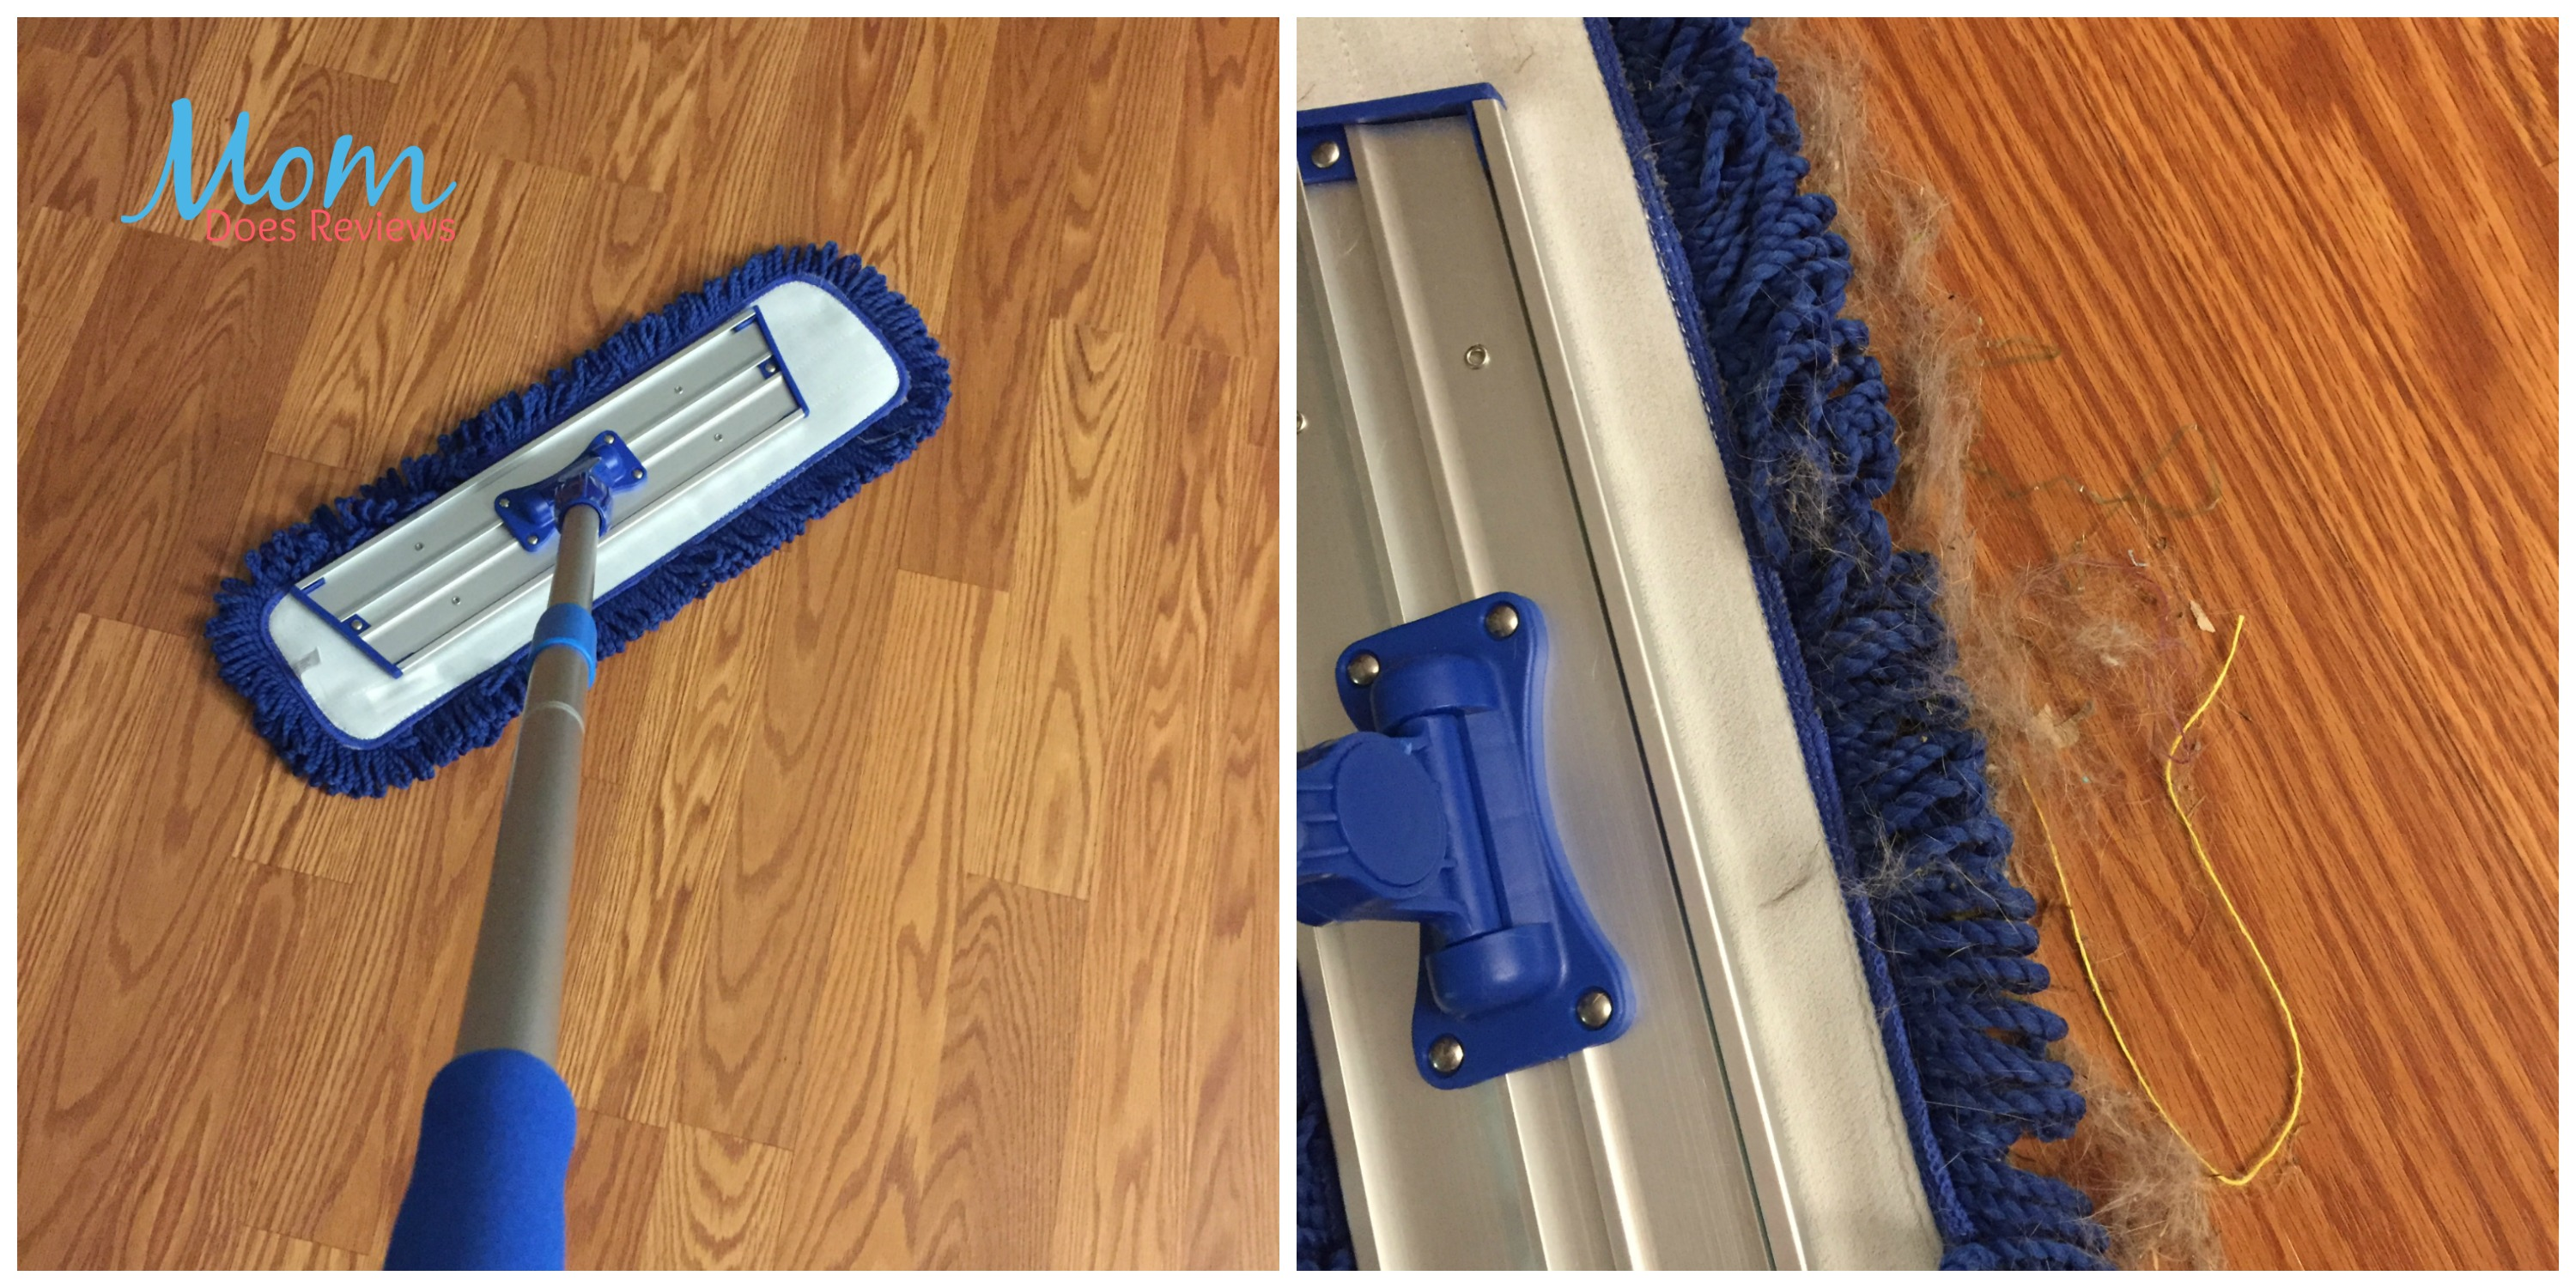 Microfiber Cleaning System Cleans Faster And Better